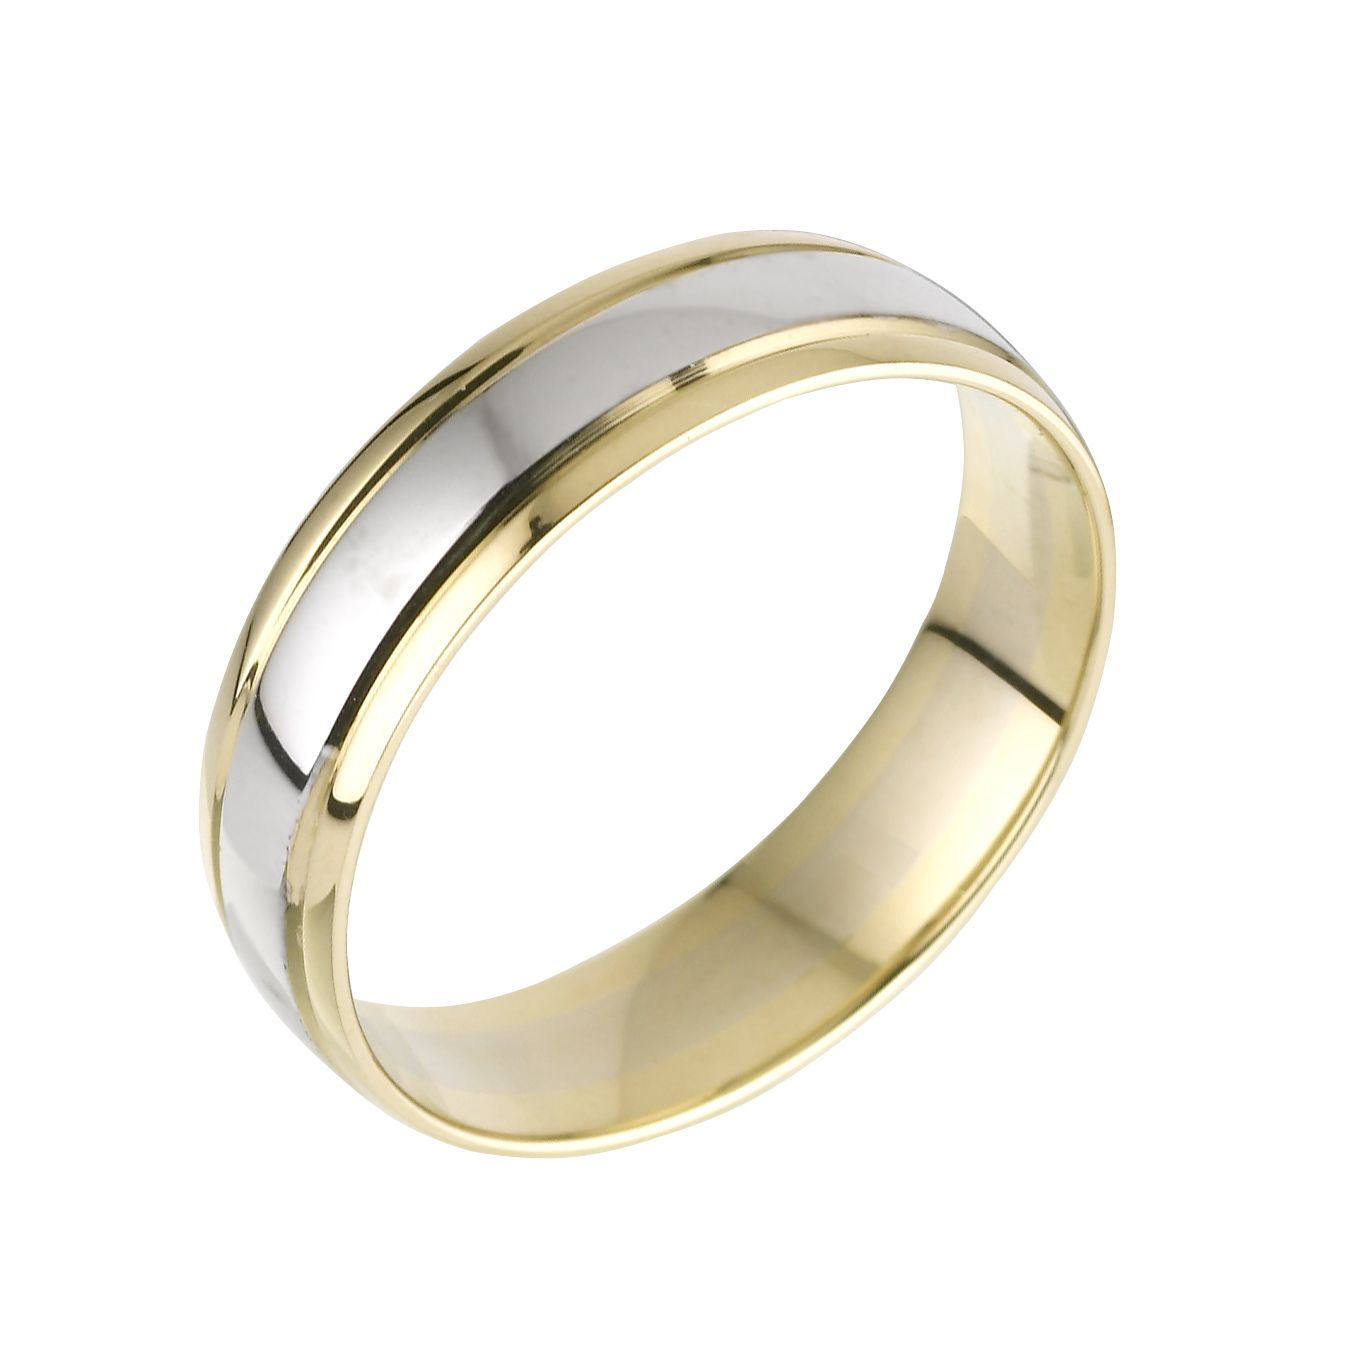 9ct Two Tone Gold Men's Ring - Product number 3401731